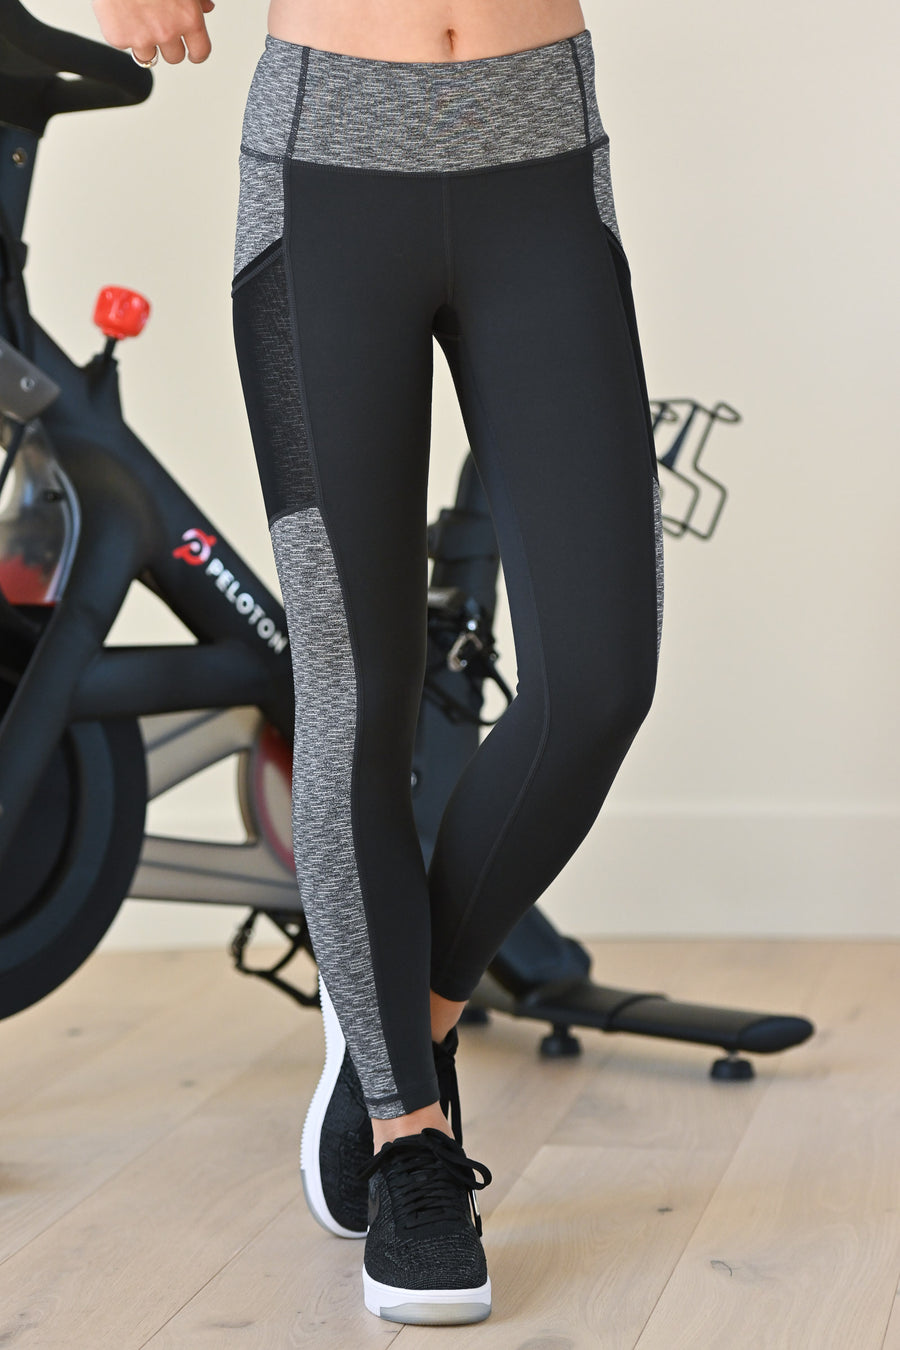 No Days Off Athletic Leggings - Grey & black women's activewear pants, Closet Candy Boutique 1